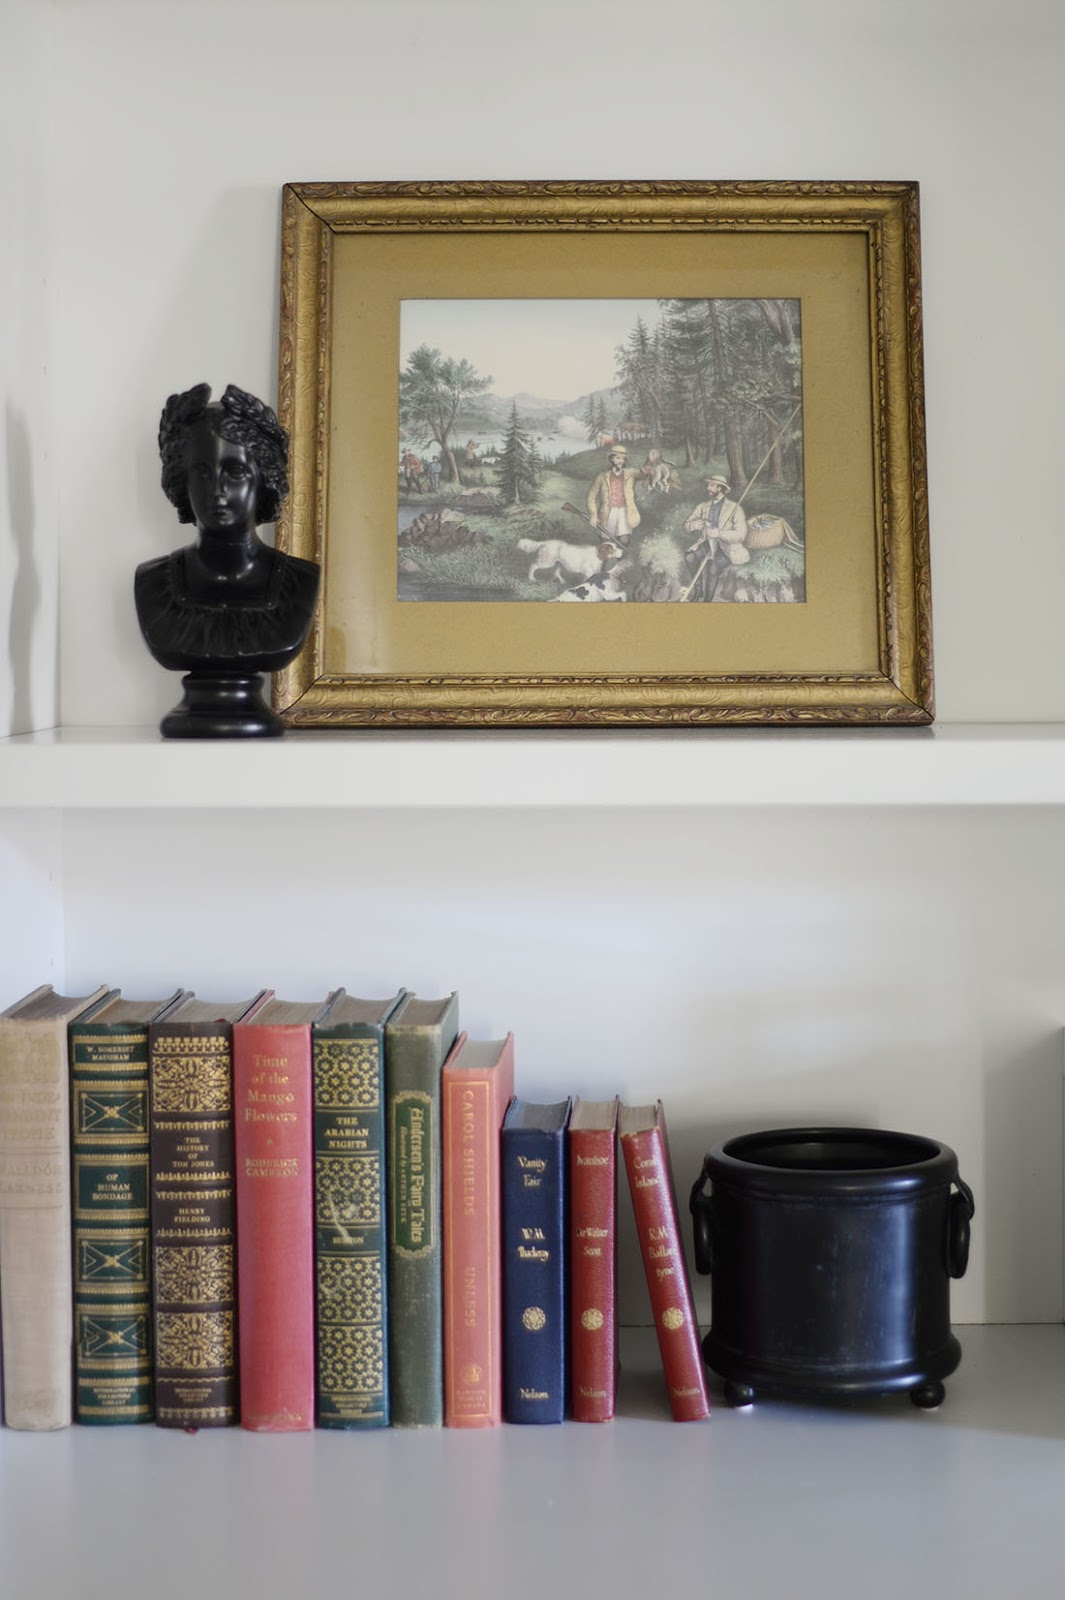 vintage hunting print, vintage books, bookcase styling, miniature bust, fall decor ideas, fall living room